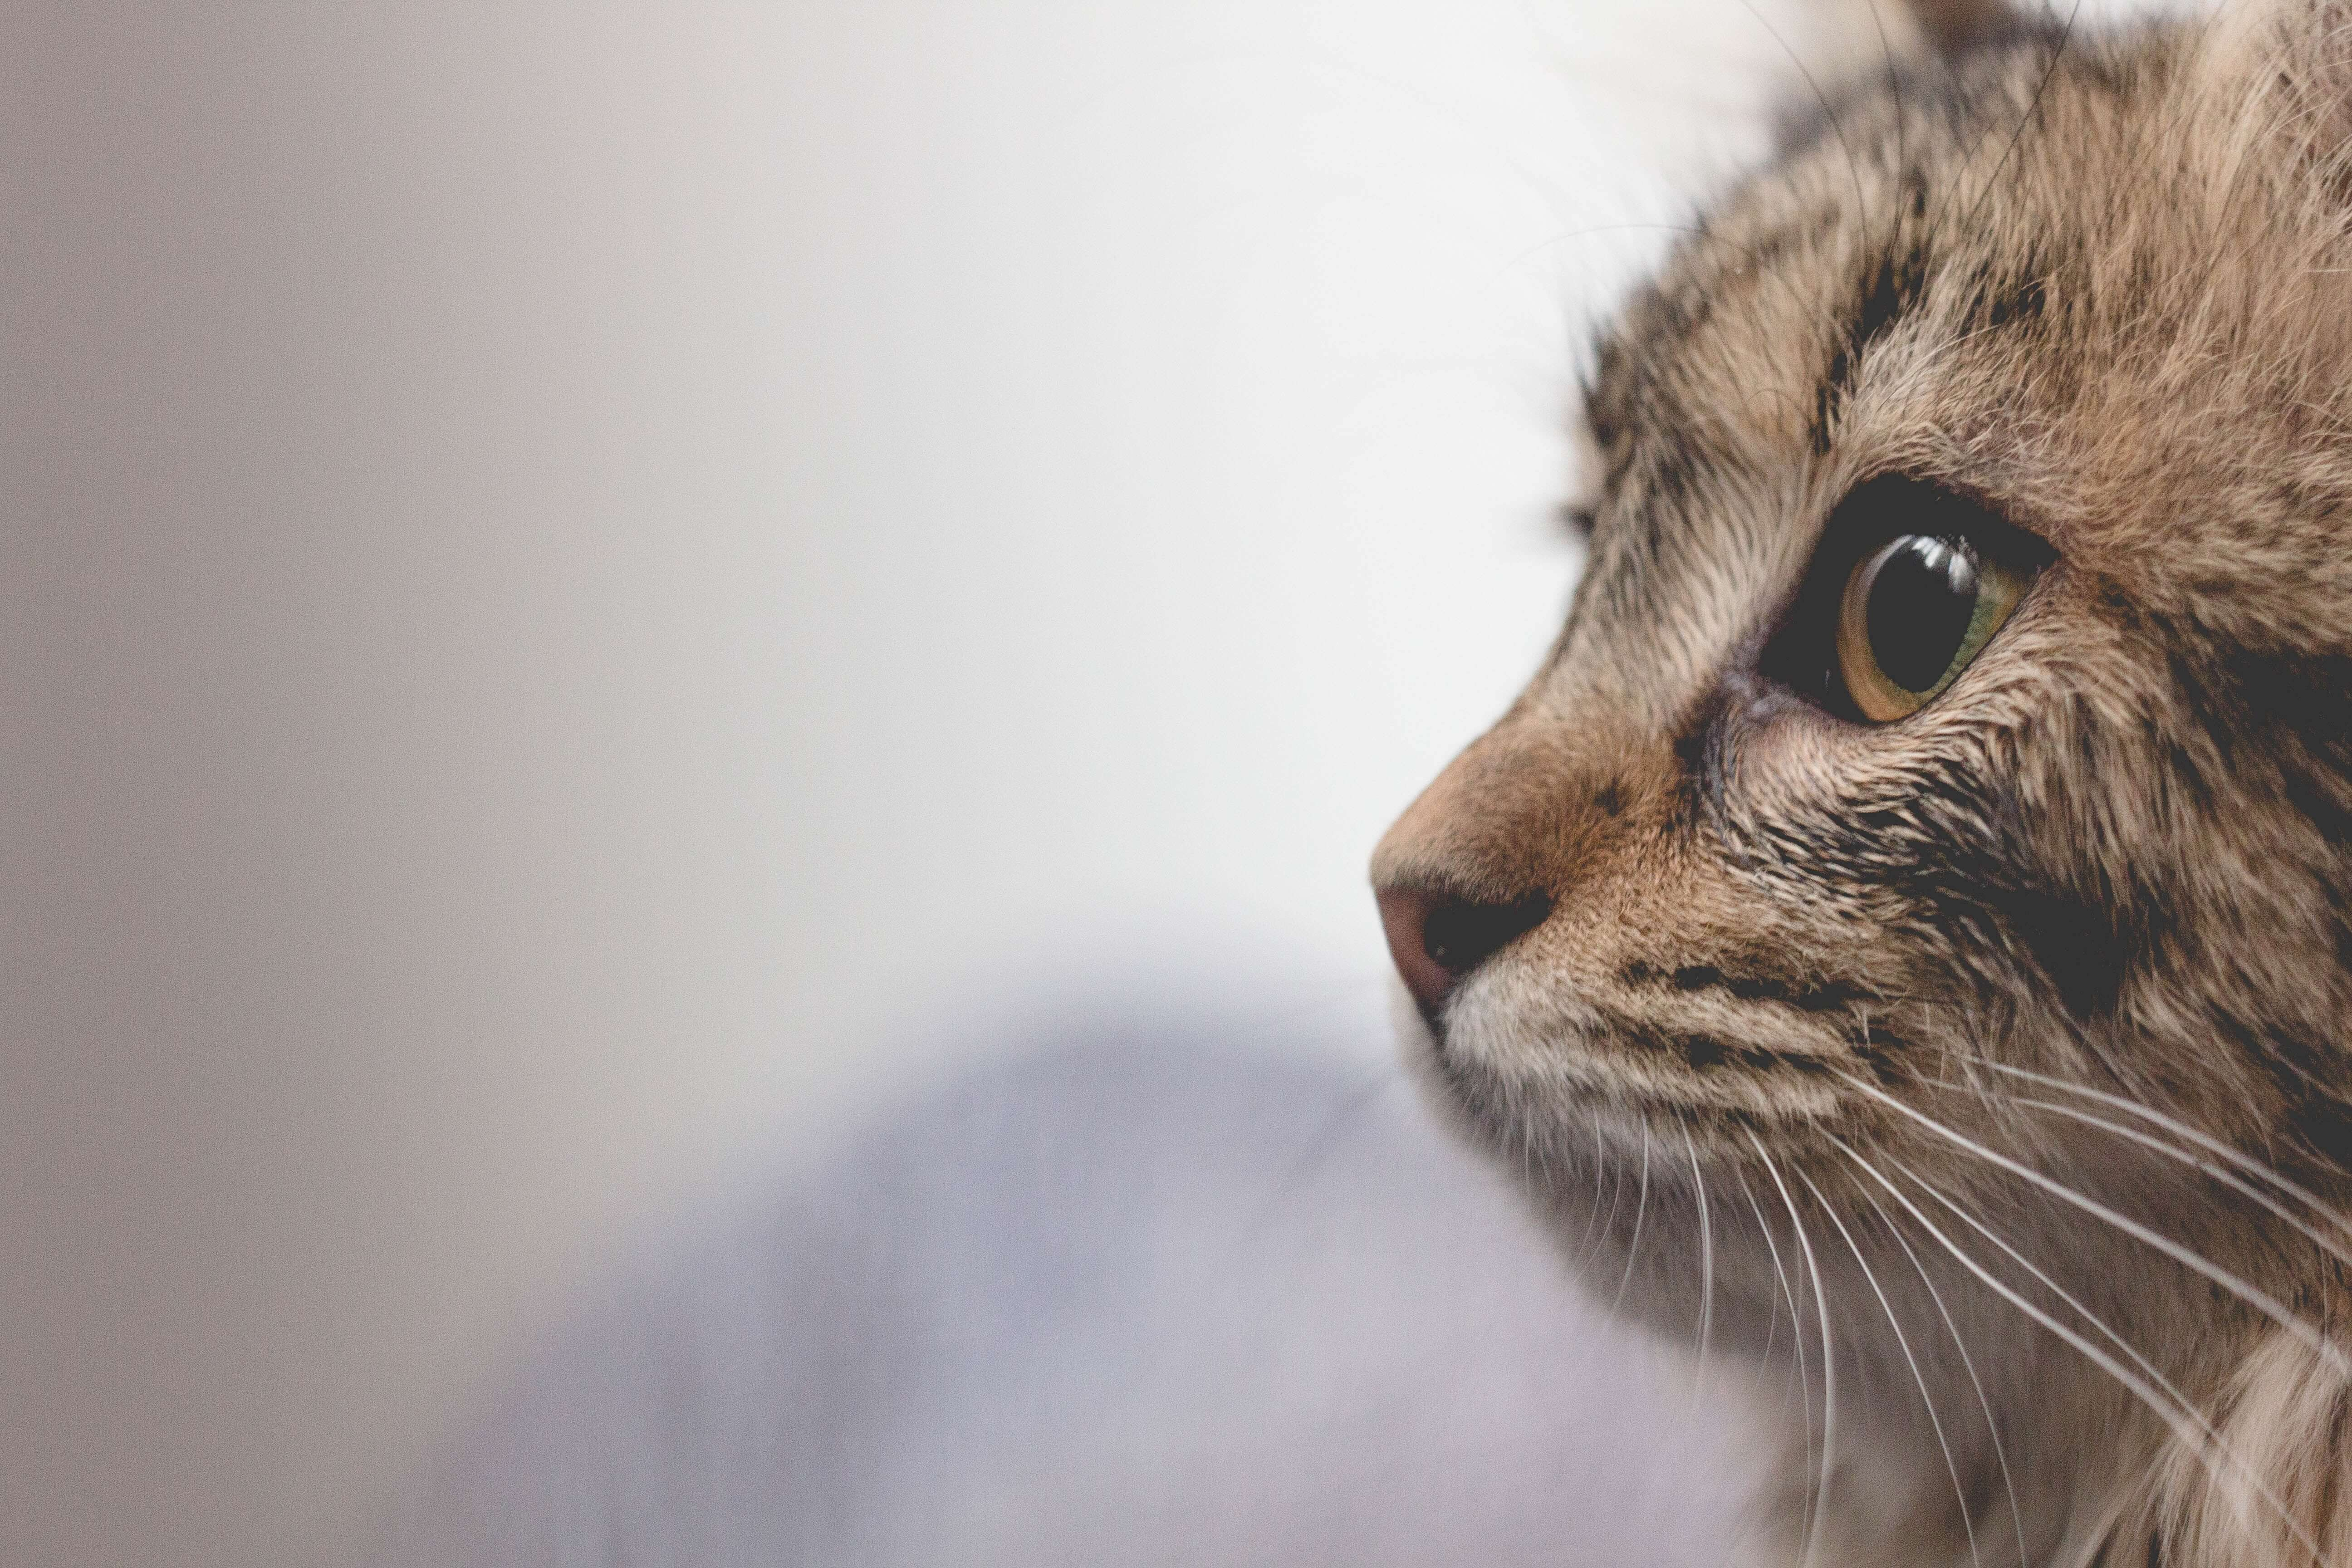 a cat or dog allergy is another one of the typical allergy types